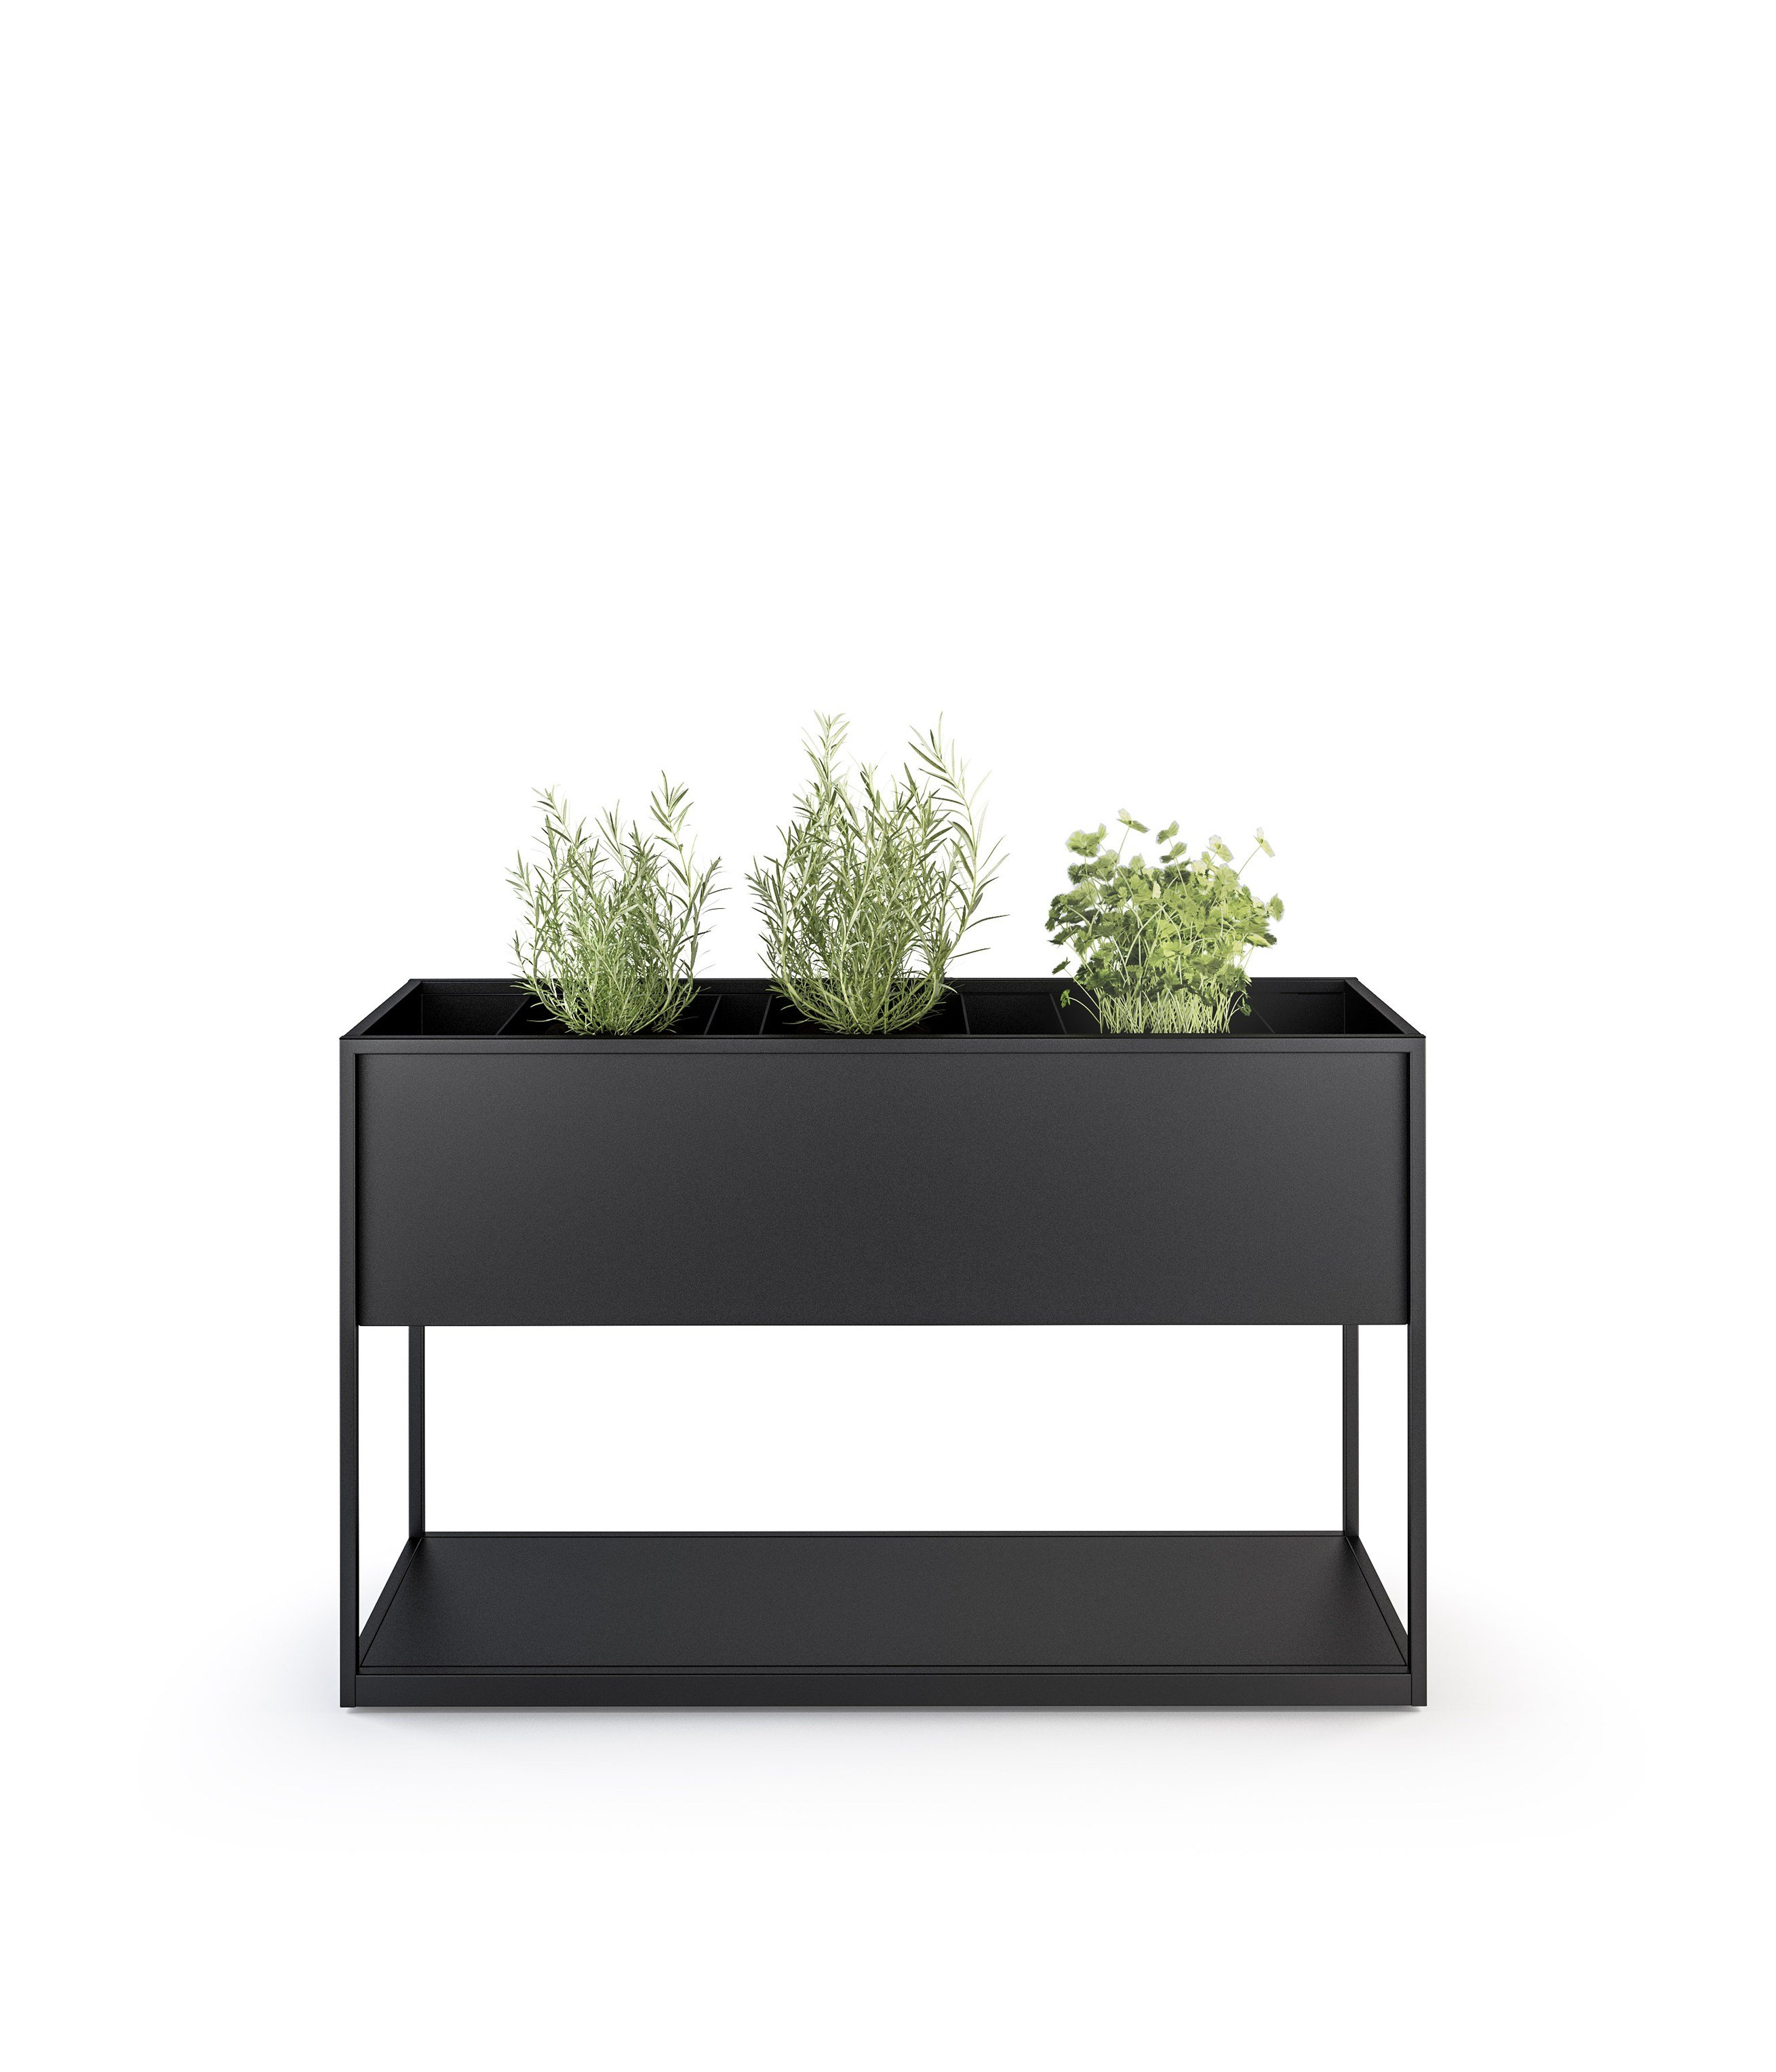 metal planter carl planters by rshults design brda broberg u ridderstrle